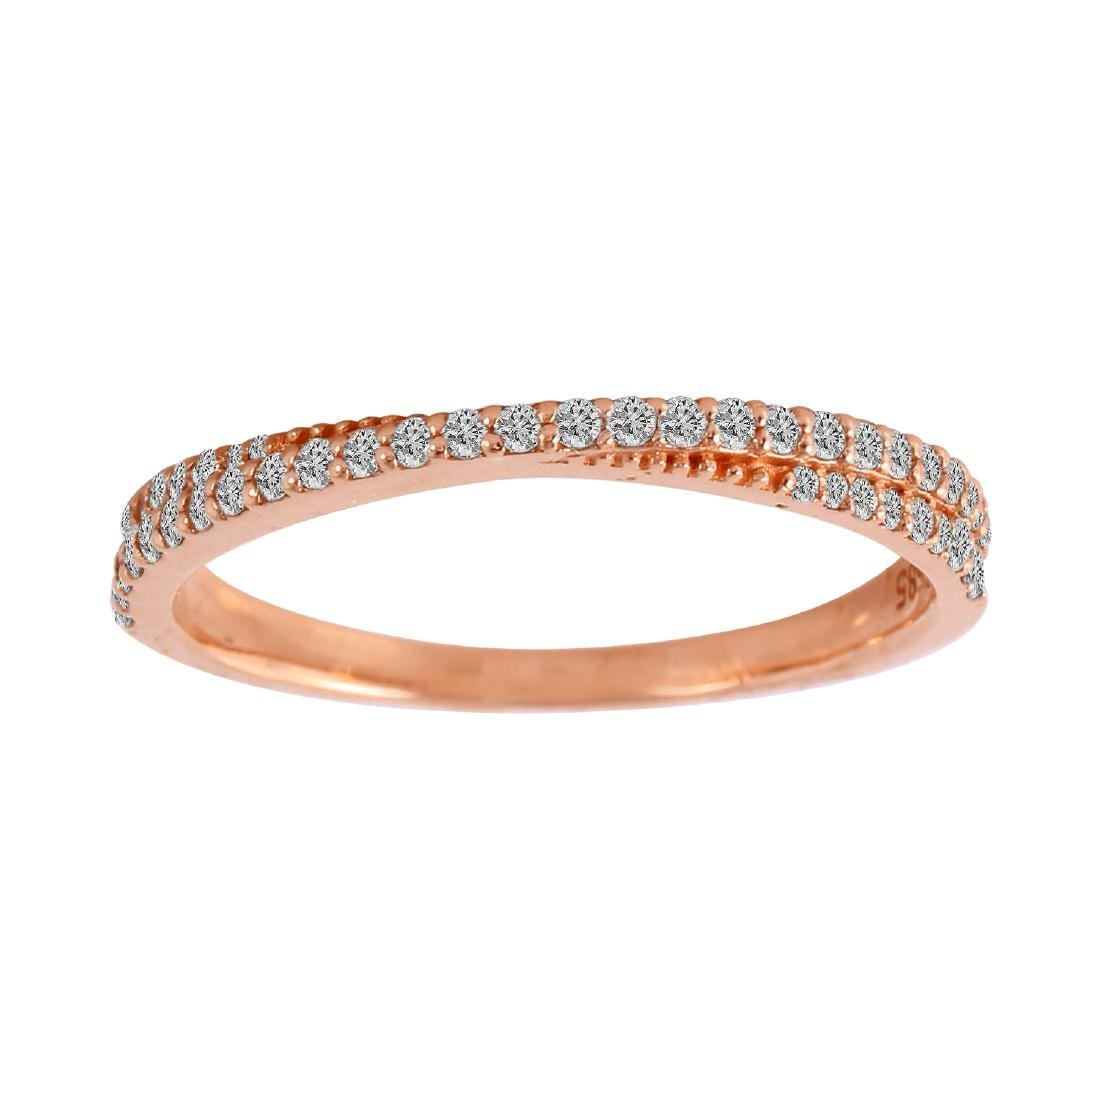 0.25 Carat Natural Diamond 18K Solid Rose Gold Ring - 2